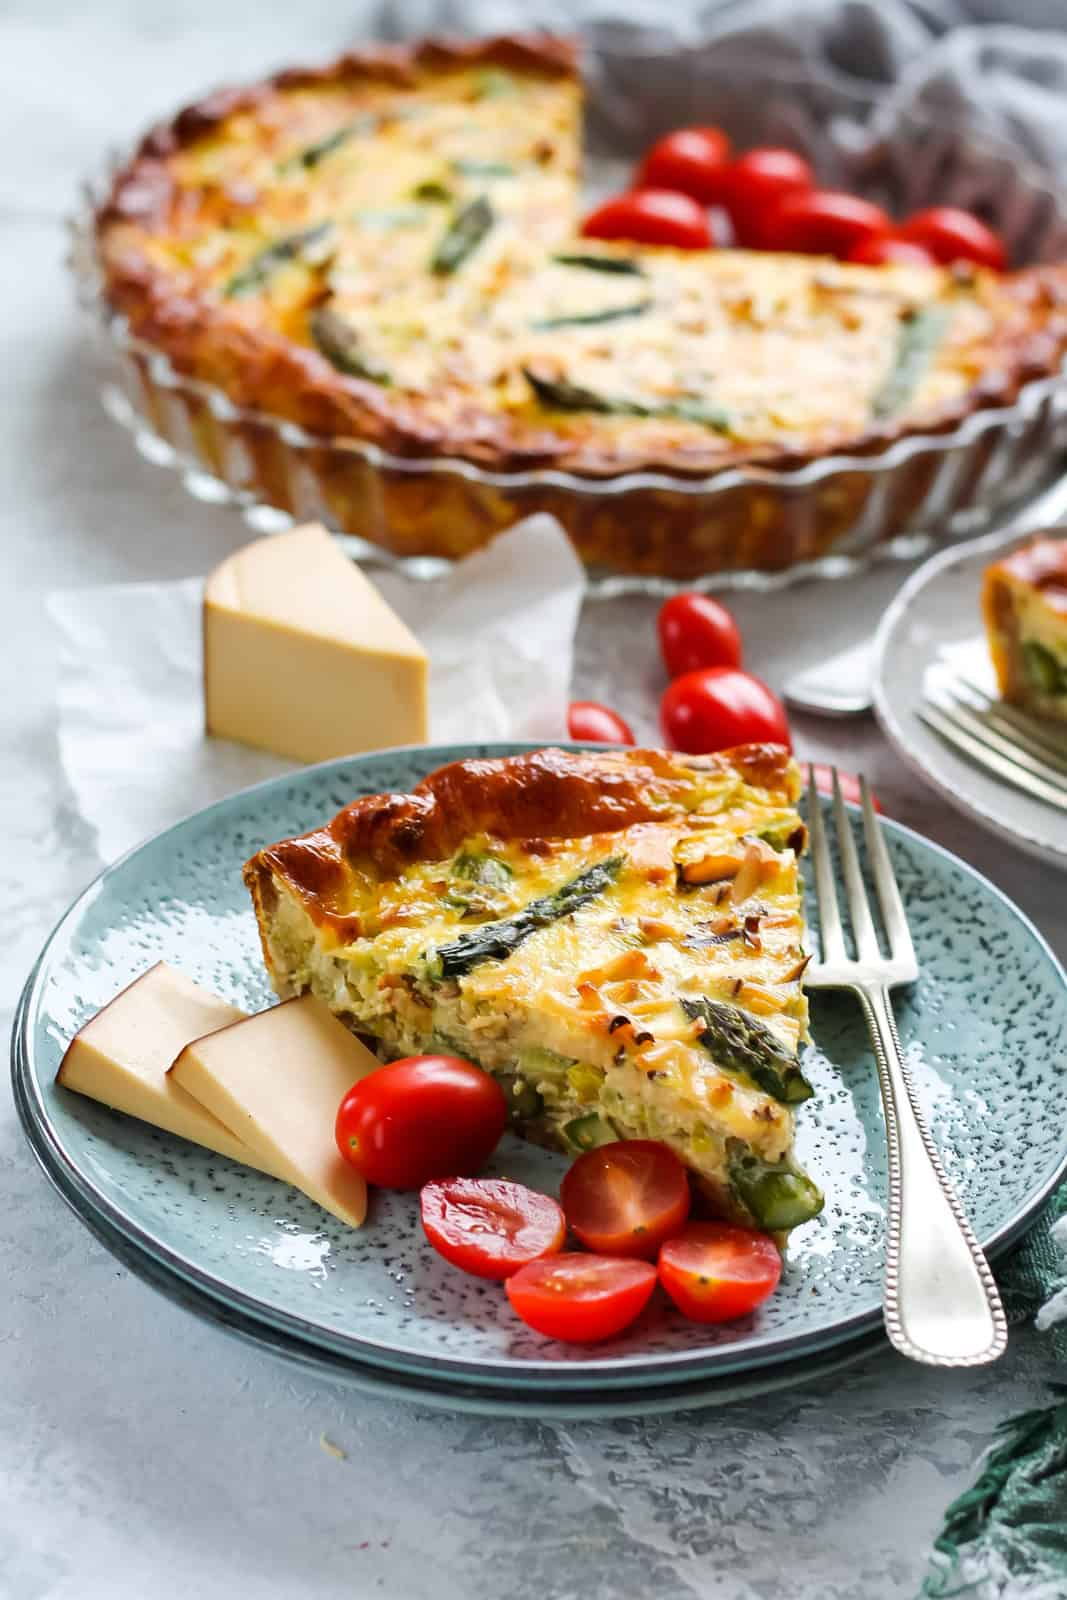 a slice of asparagus quiche on a blue plate with a plate of quiche in the background